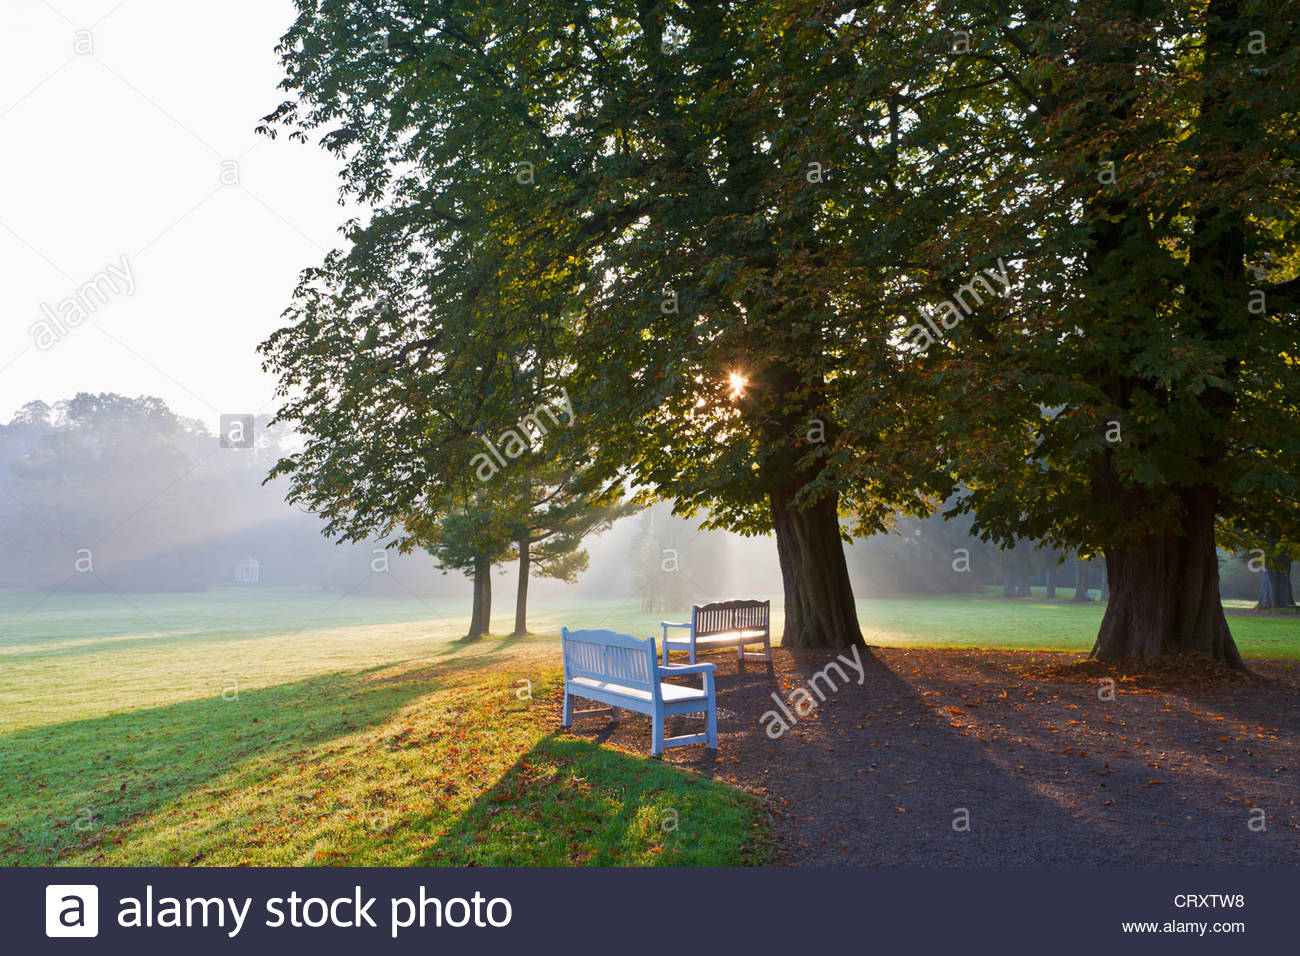 Germany, Thuringia, Weimar, View of palace garden - Stock Image